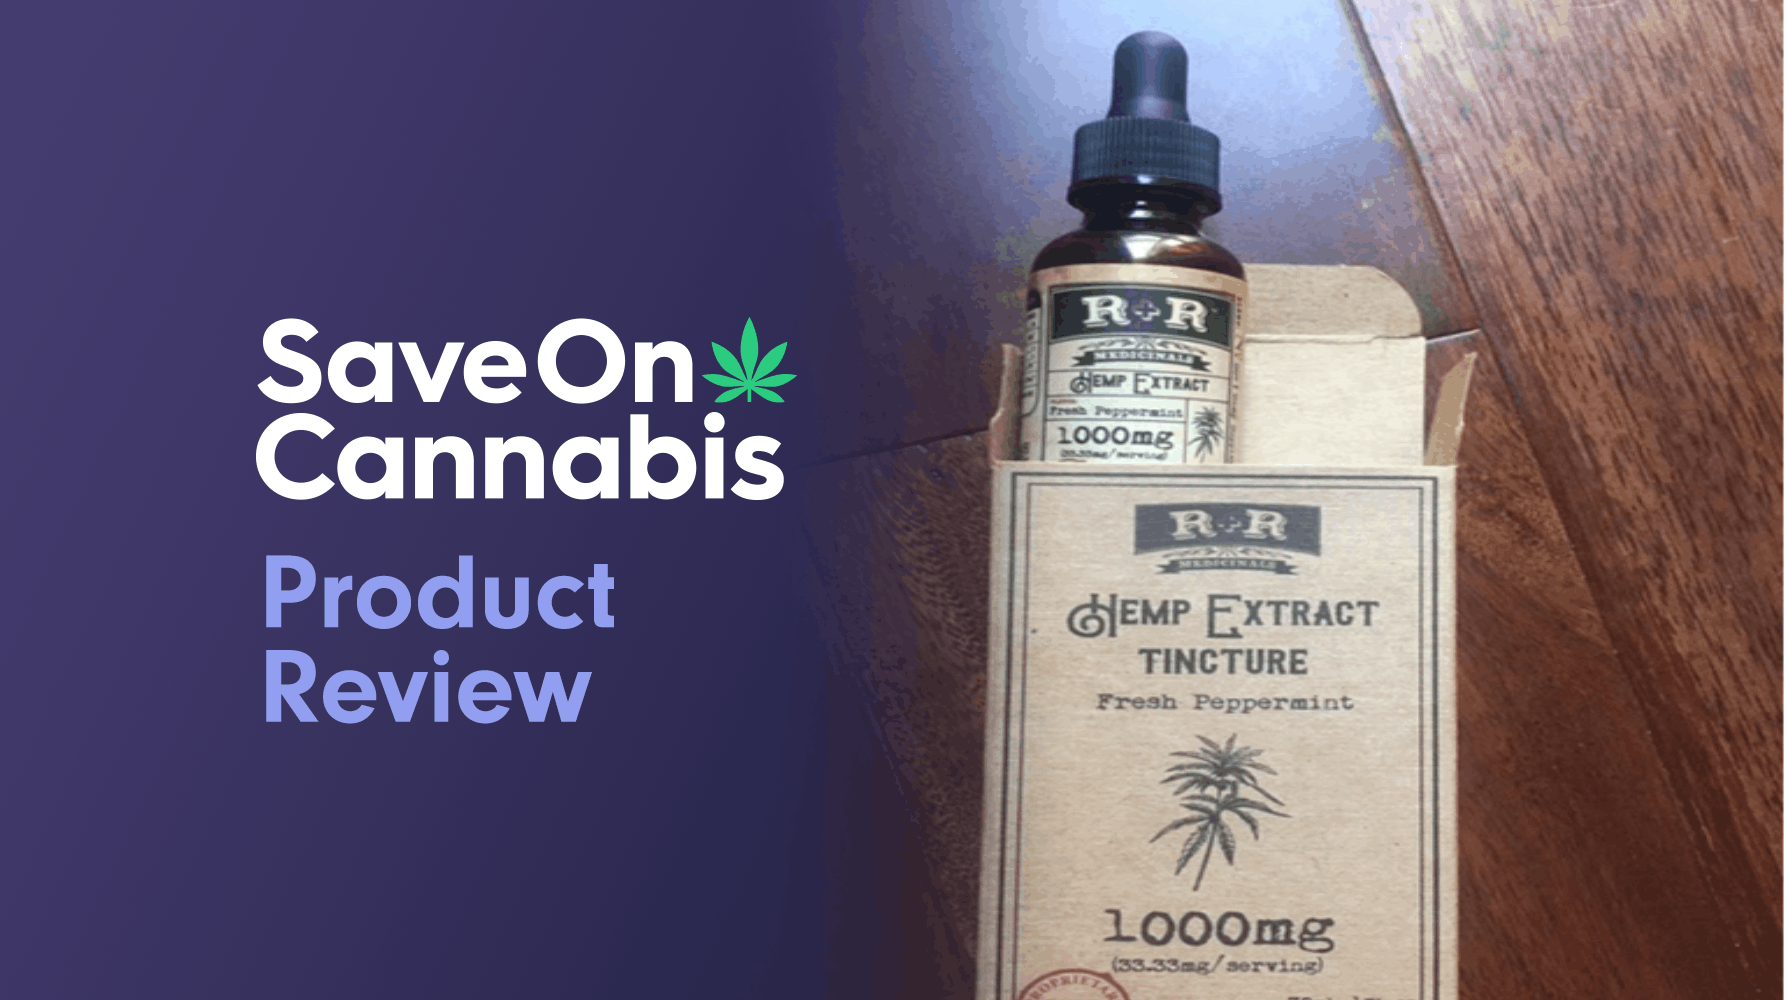 R & R Medicinals CBD Hemp Extract Tincture Save On Cannabis Review Website